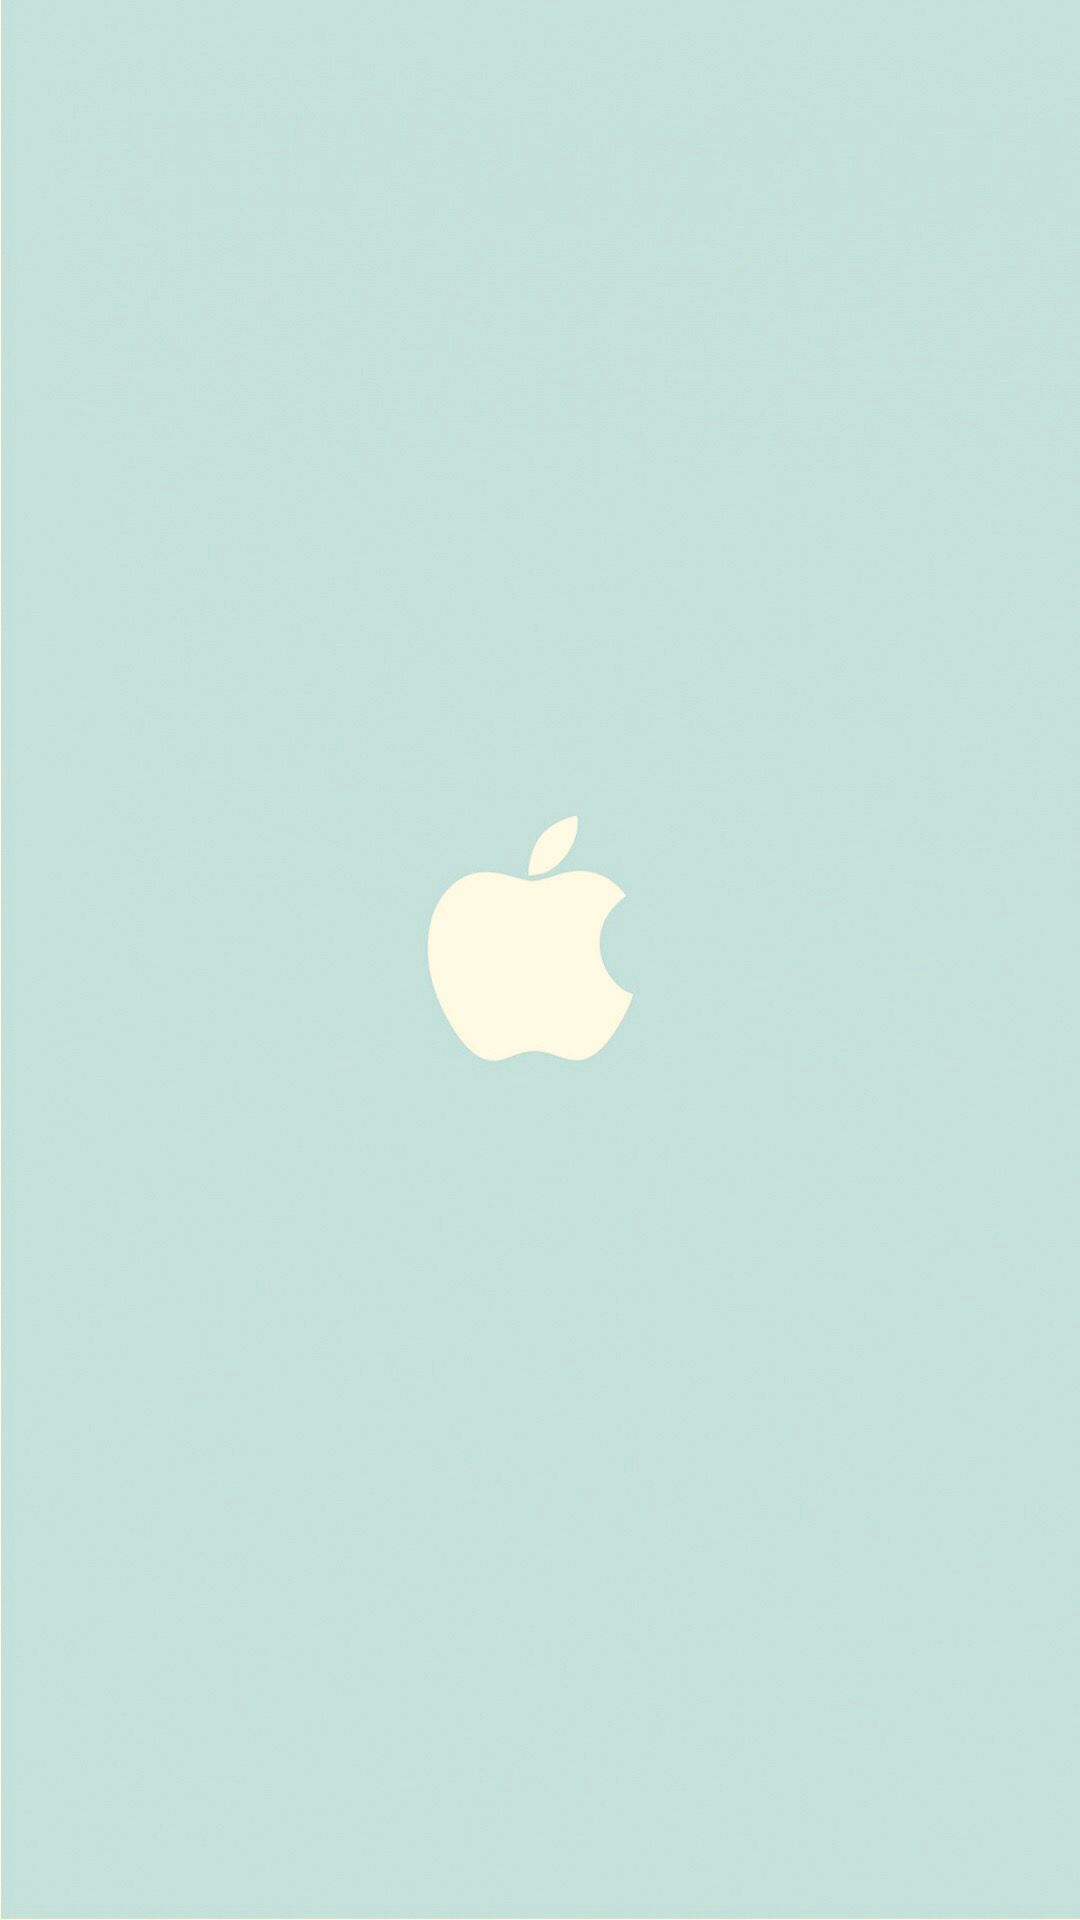 Pin By Leavicini On Like Iphone Wallpaper Tumblr Aesthetic Apple Wallpaper Pretty Wallpaper Iphone